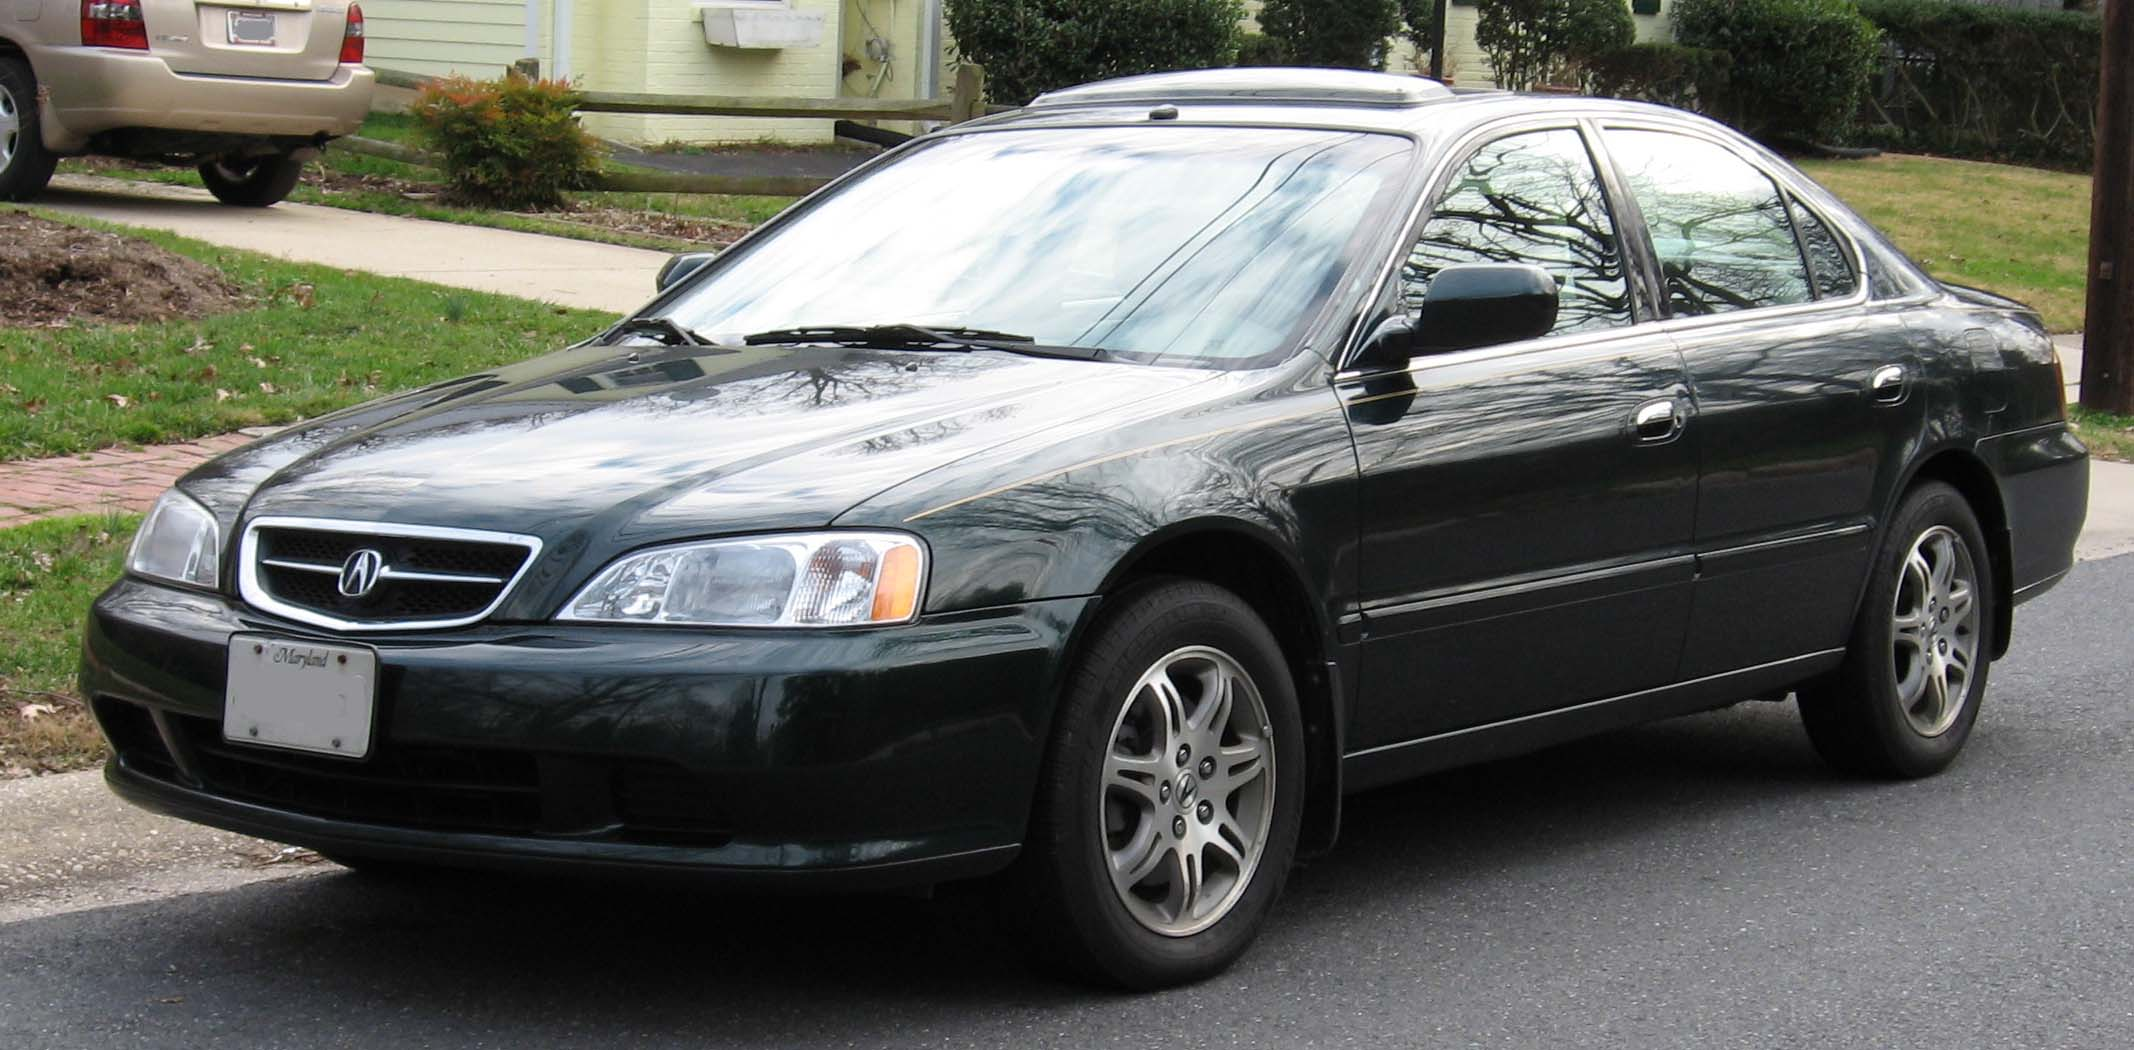 File:99-01 Acura TL.jpg - Wikimedia Commons